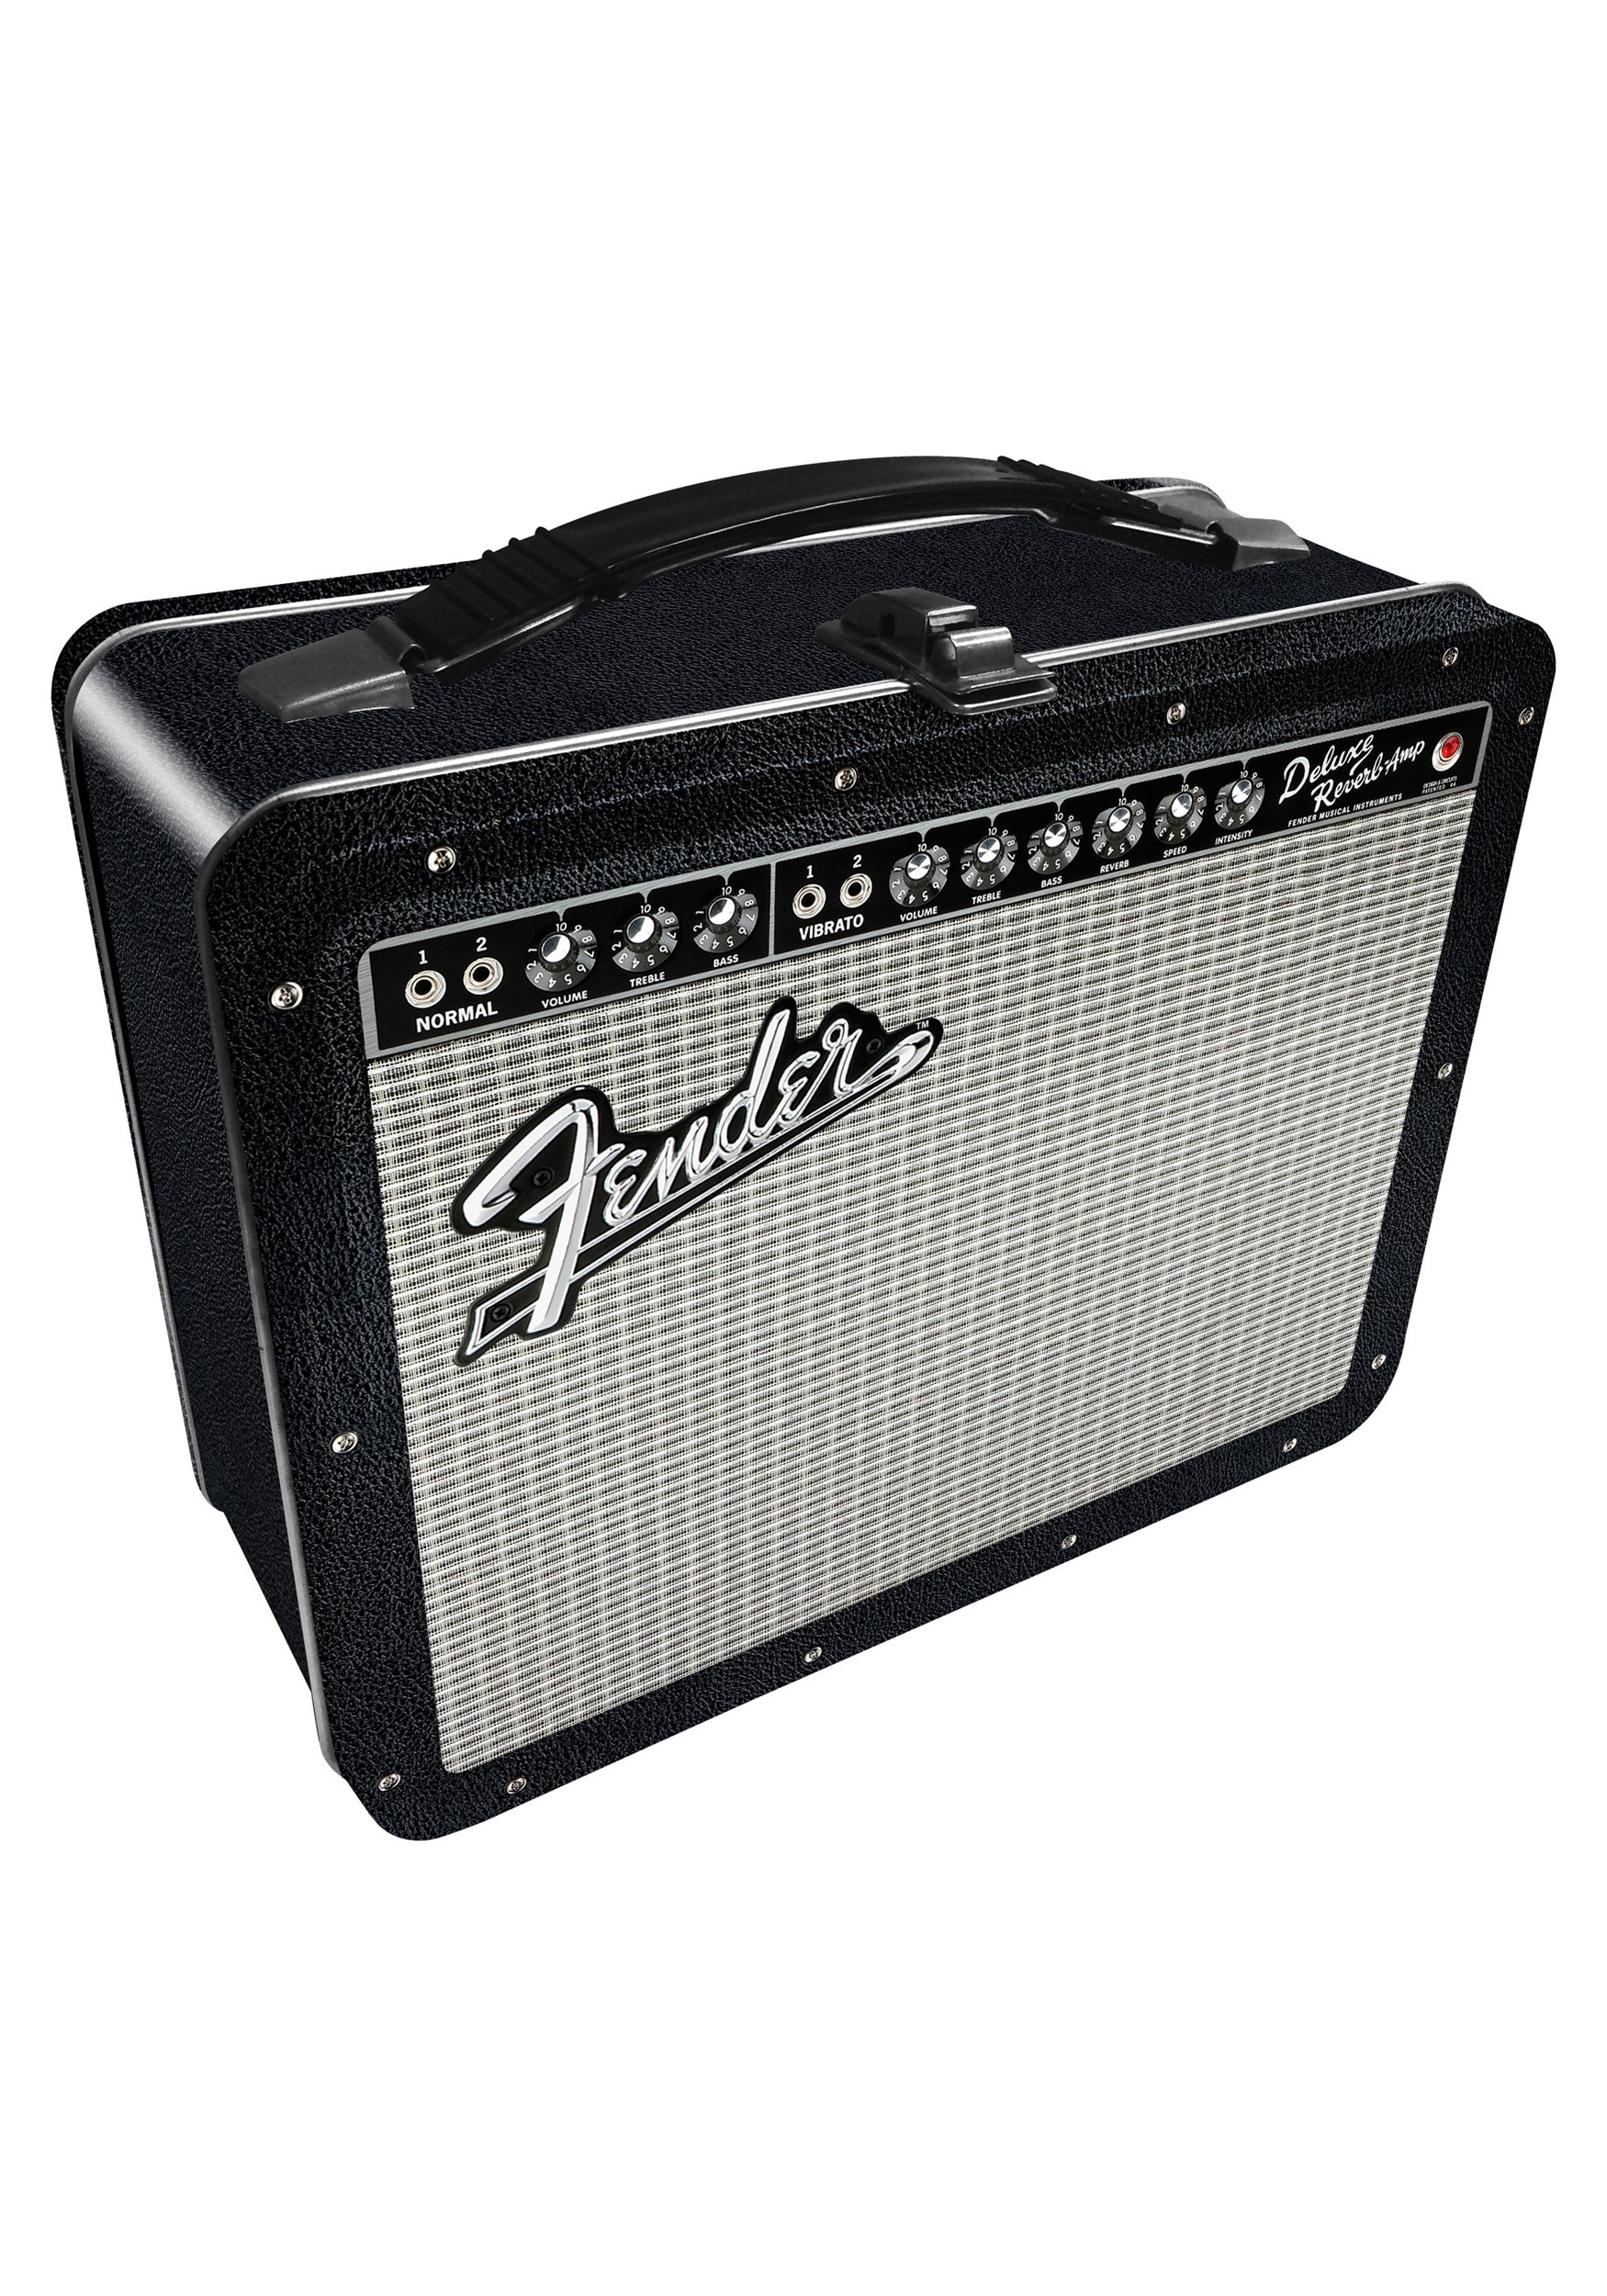 Metal Fender Amp Lunchbox